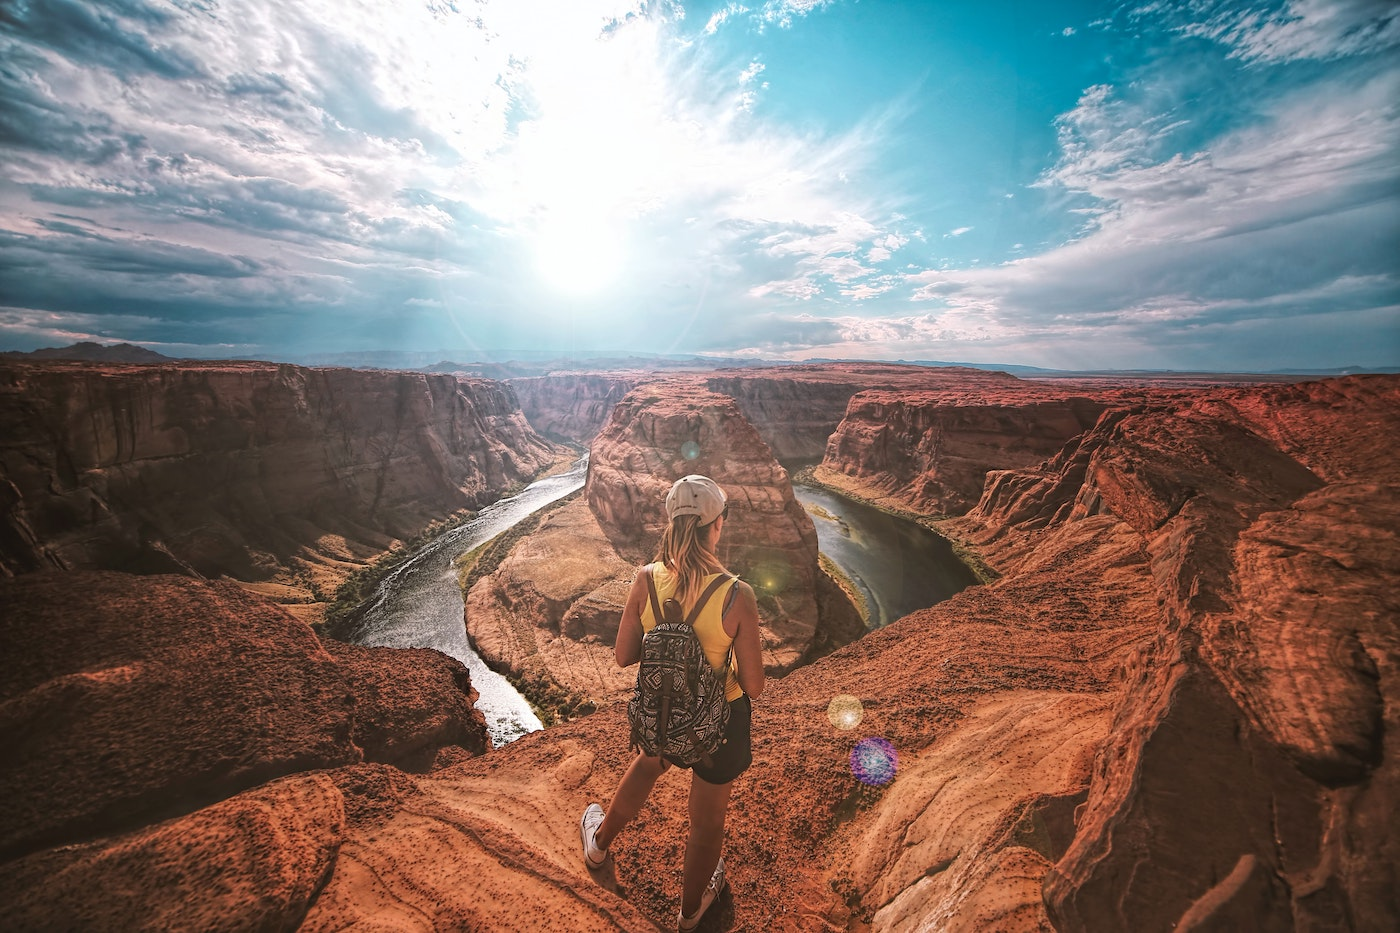 woman in utah hiking surrounded by red rocks